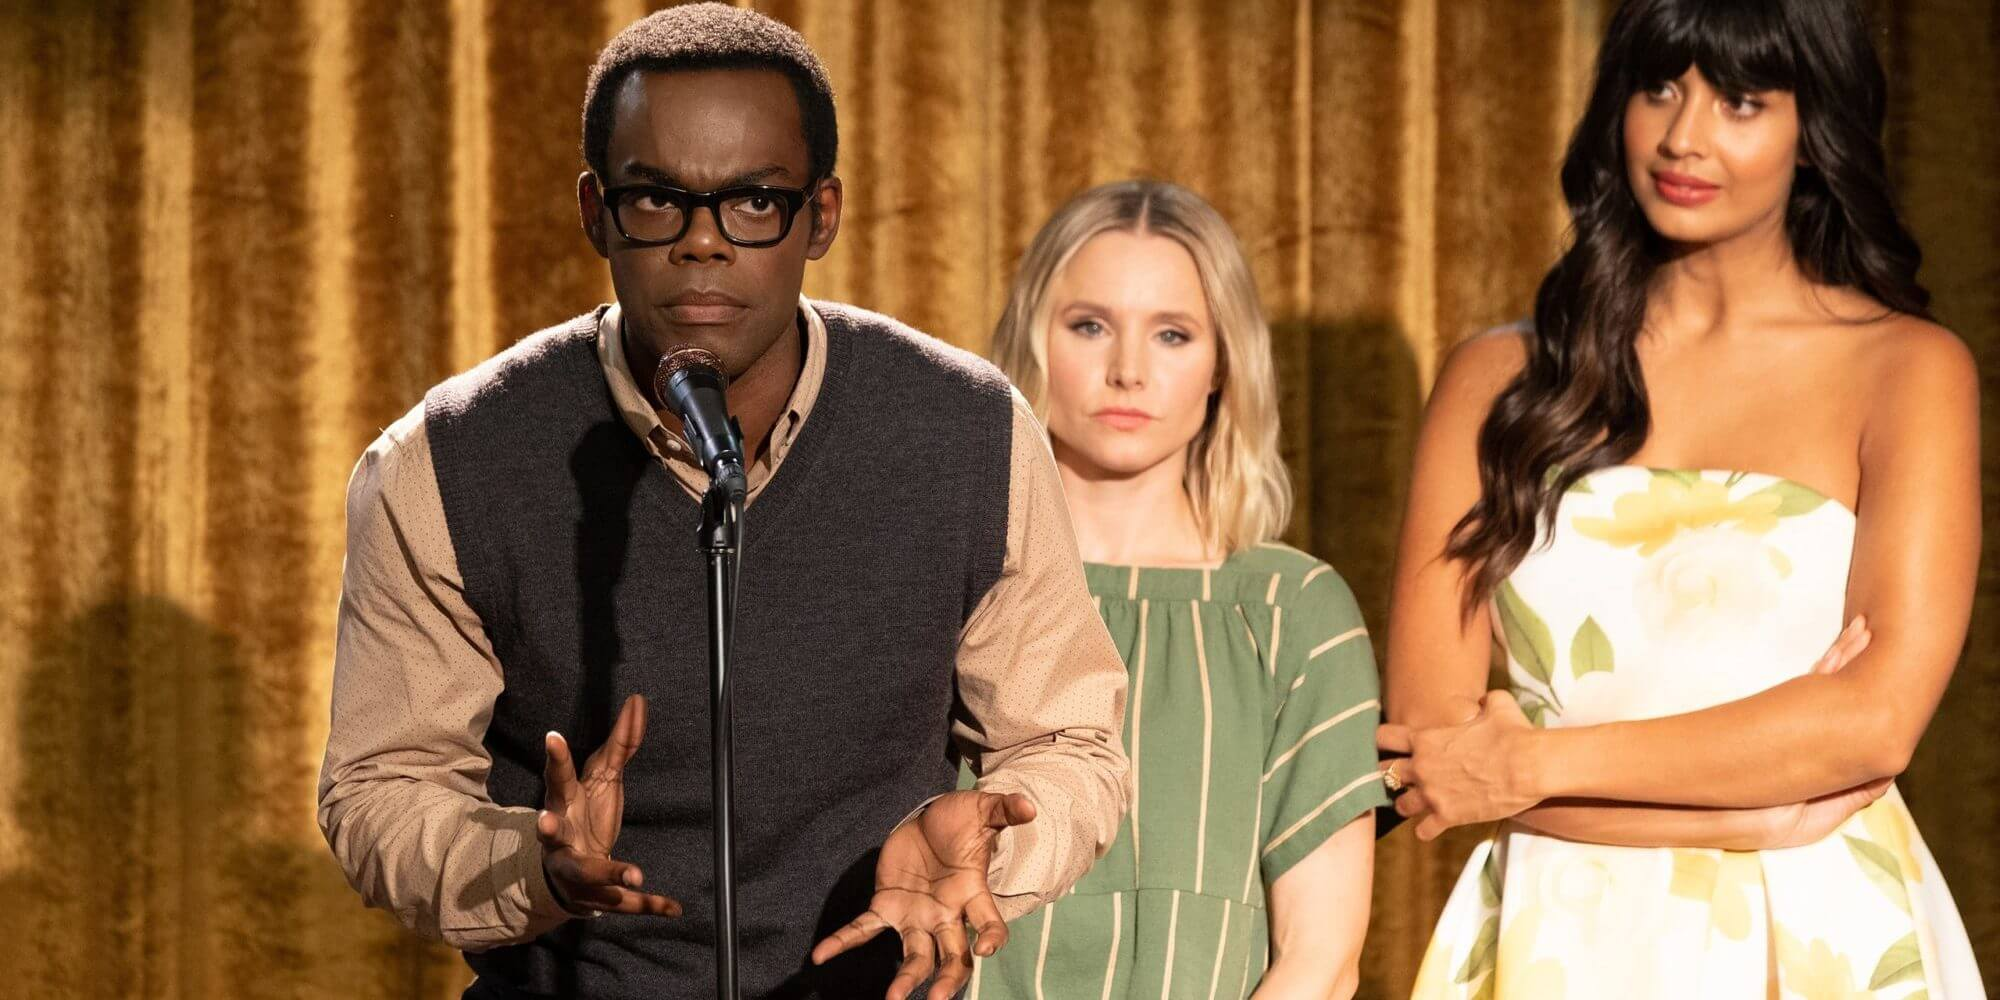 The Good Place Series Finale Chidi